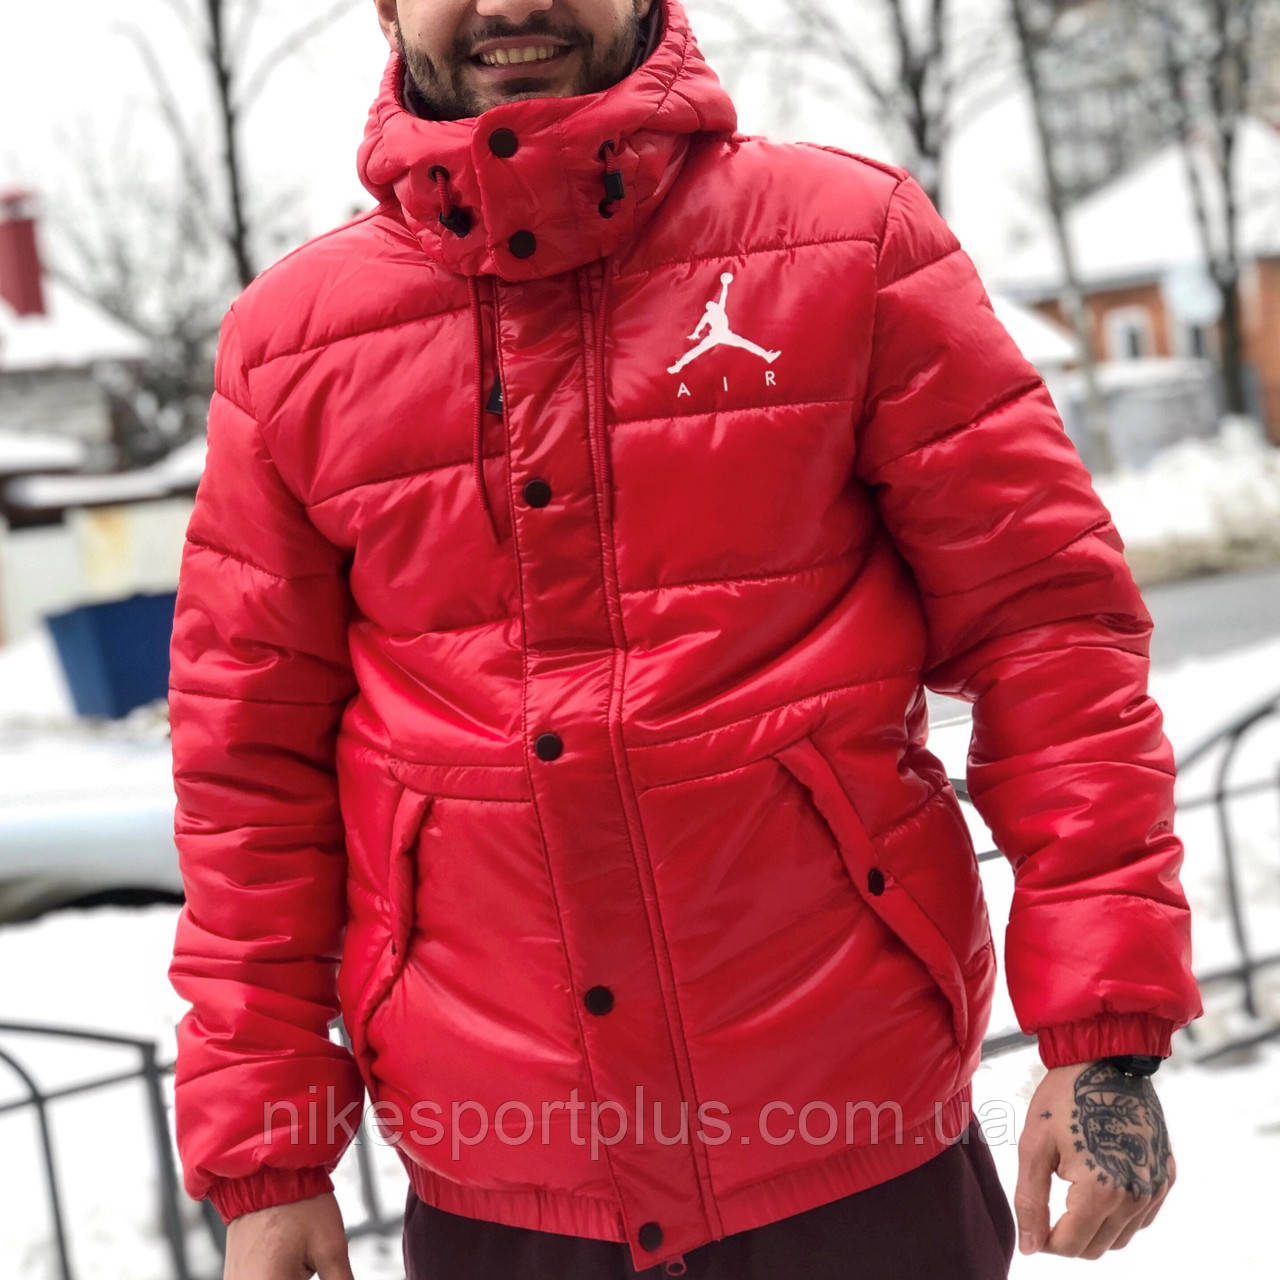 КУРТКА JUMPMAN PUFFER JACKET AA1957-687